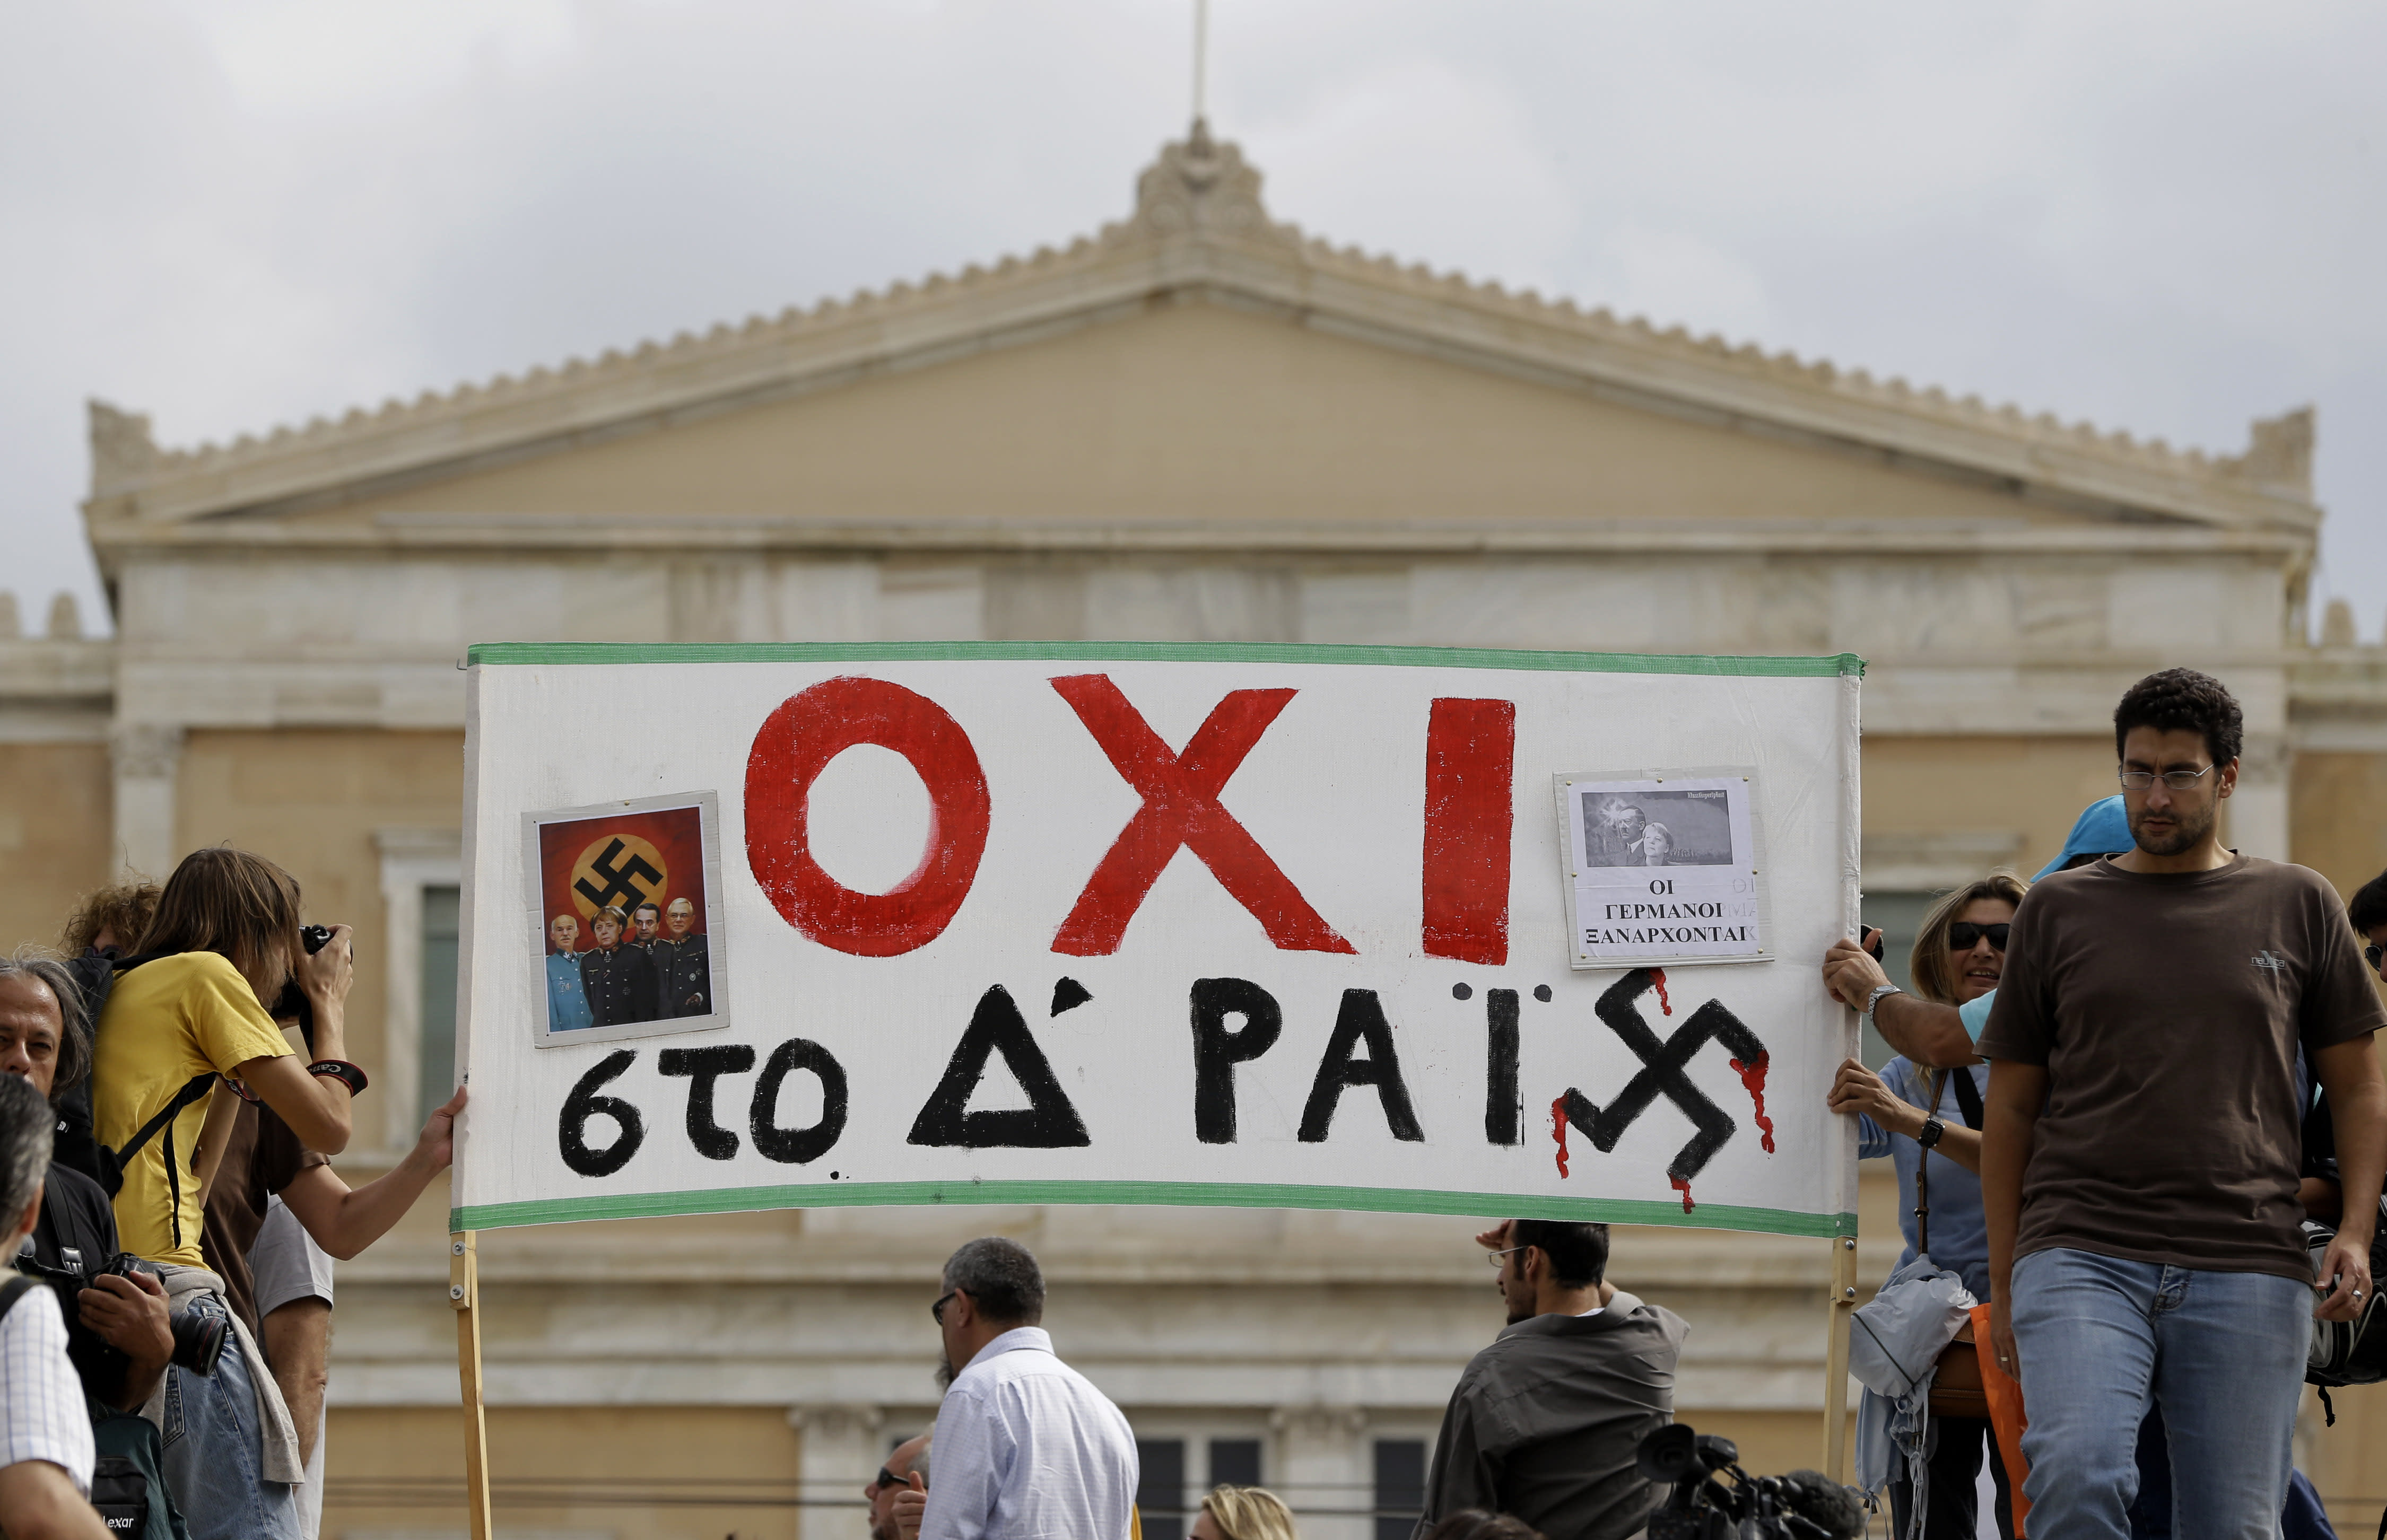 "Demonstrator display a banner that reads "" NO to the 4th Reich"" prior to an protest in Athens on Tuesday Oct. 9, 2012. German Chancellor Angela Merkel makes her first visit to Greece since the eurozone crisis began here three years ago. Her five-hour stop is seen by the government as a historic boost for the country's future in Europe's shared currency, but by protesters as a harbinger of more austerity and hardship. More than 7,000 police will be on hand, cordoning off parks and other sections of central Athens, to keep demonstrators away from the German leader who is due to arrive Tuesday in the Greek capital for talks with conservative Prime Minister Antonis Samaras. (AP Photo/Lefteris Pitarakis)"